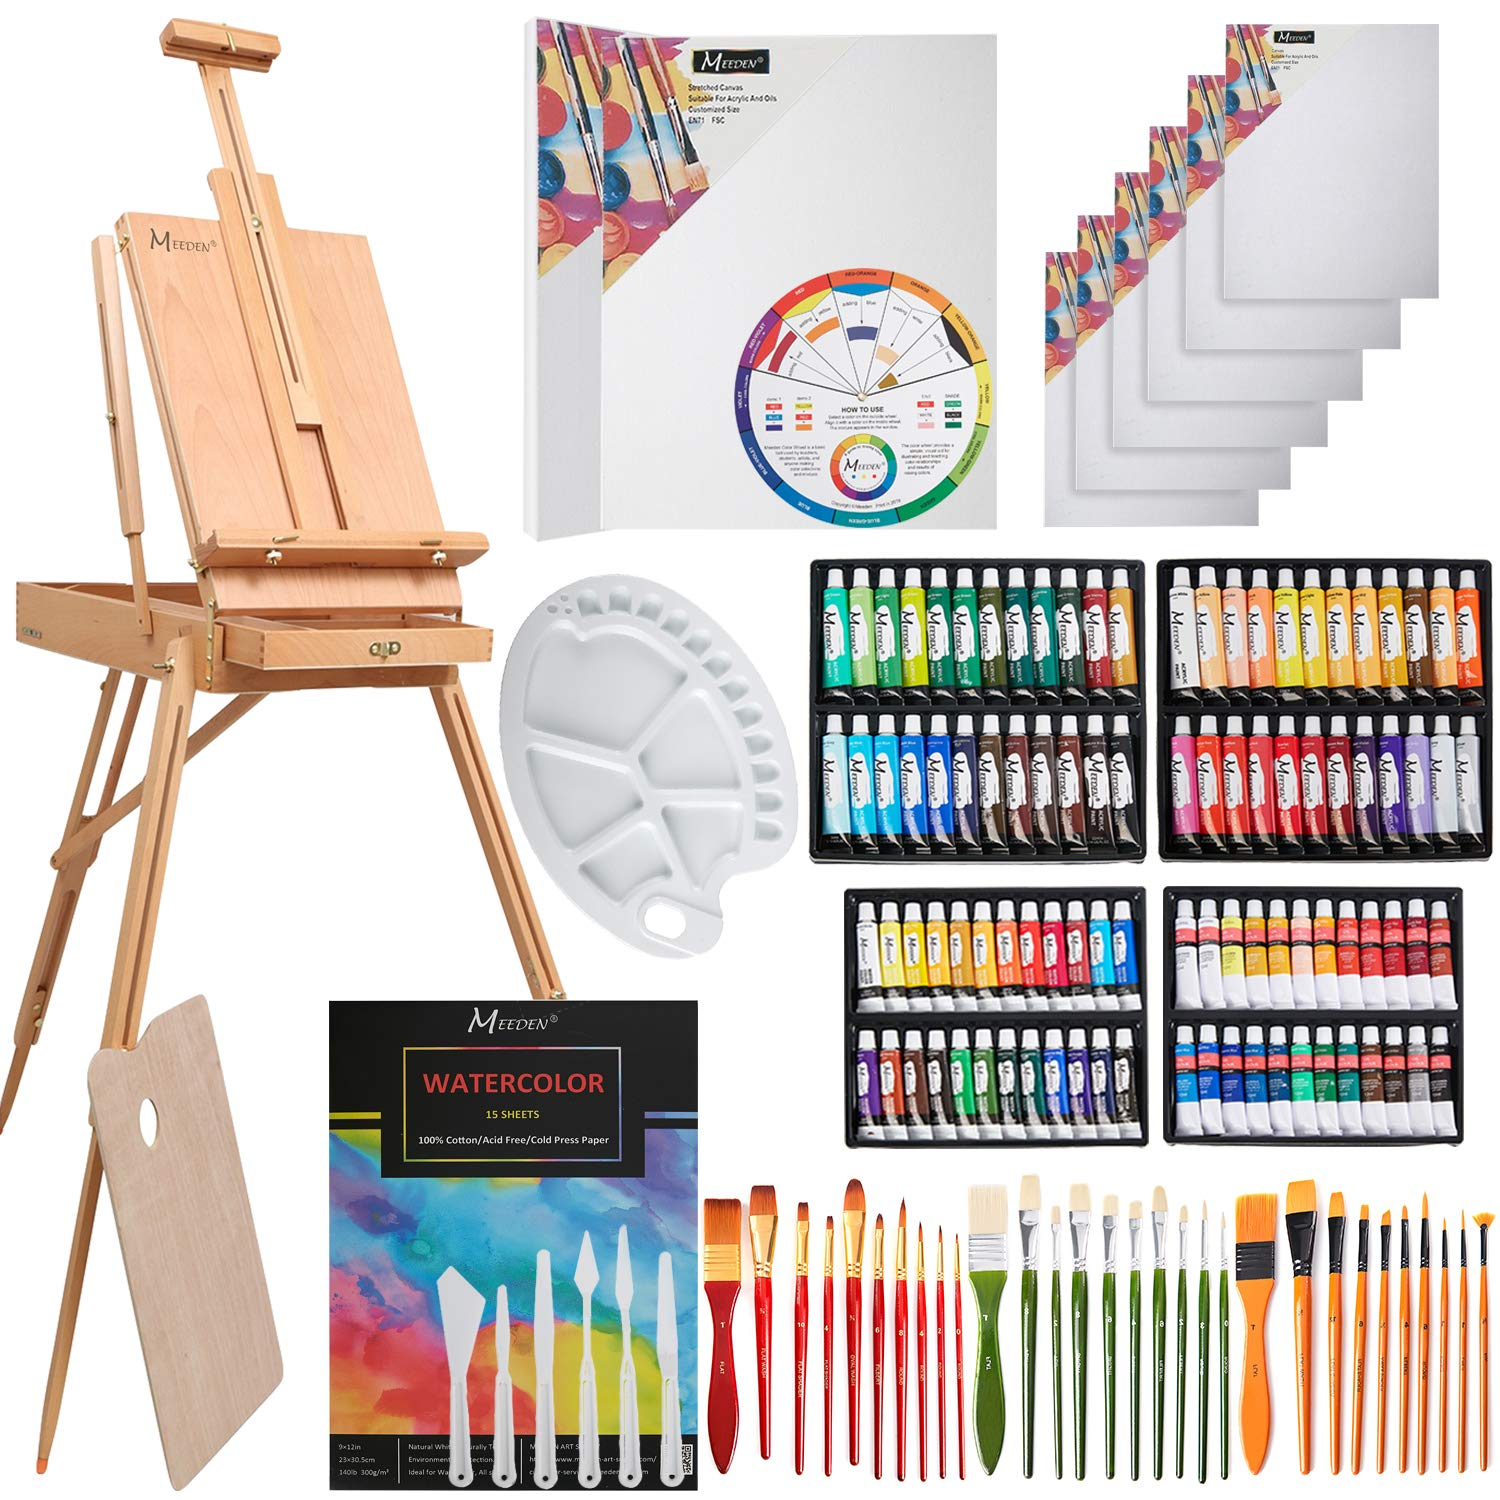 MEEDEN 145 Piece Deluxe Artist Painting Set with French Easel, Art Painting Brushes, Paint Tubes, Painting Pads, Stretched Canvas, Painting Knives for Acrylic, Oil, Watercolor Painting by MEEDEN